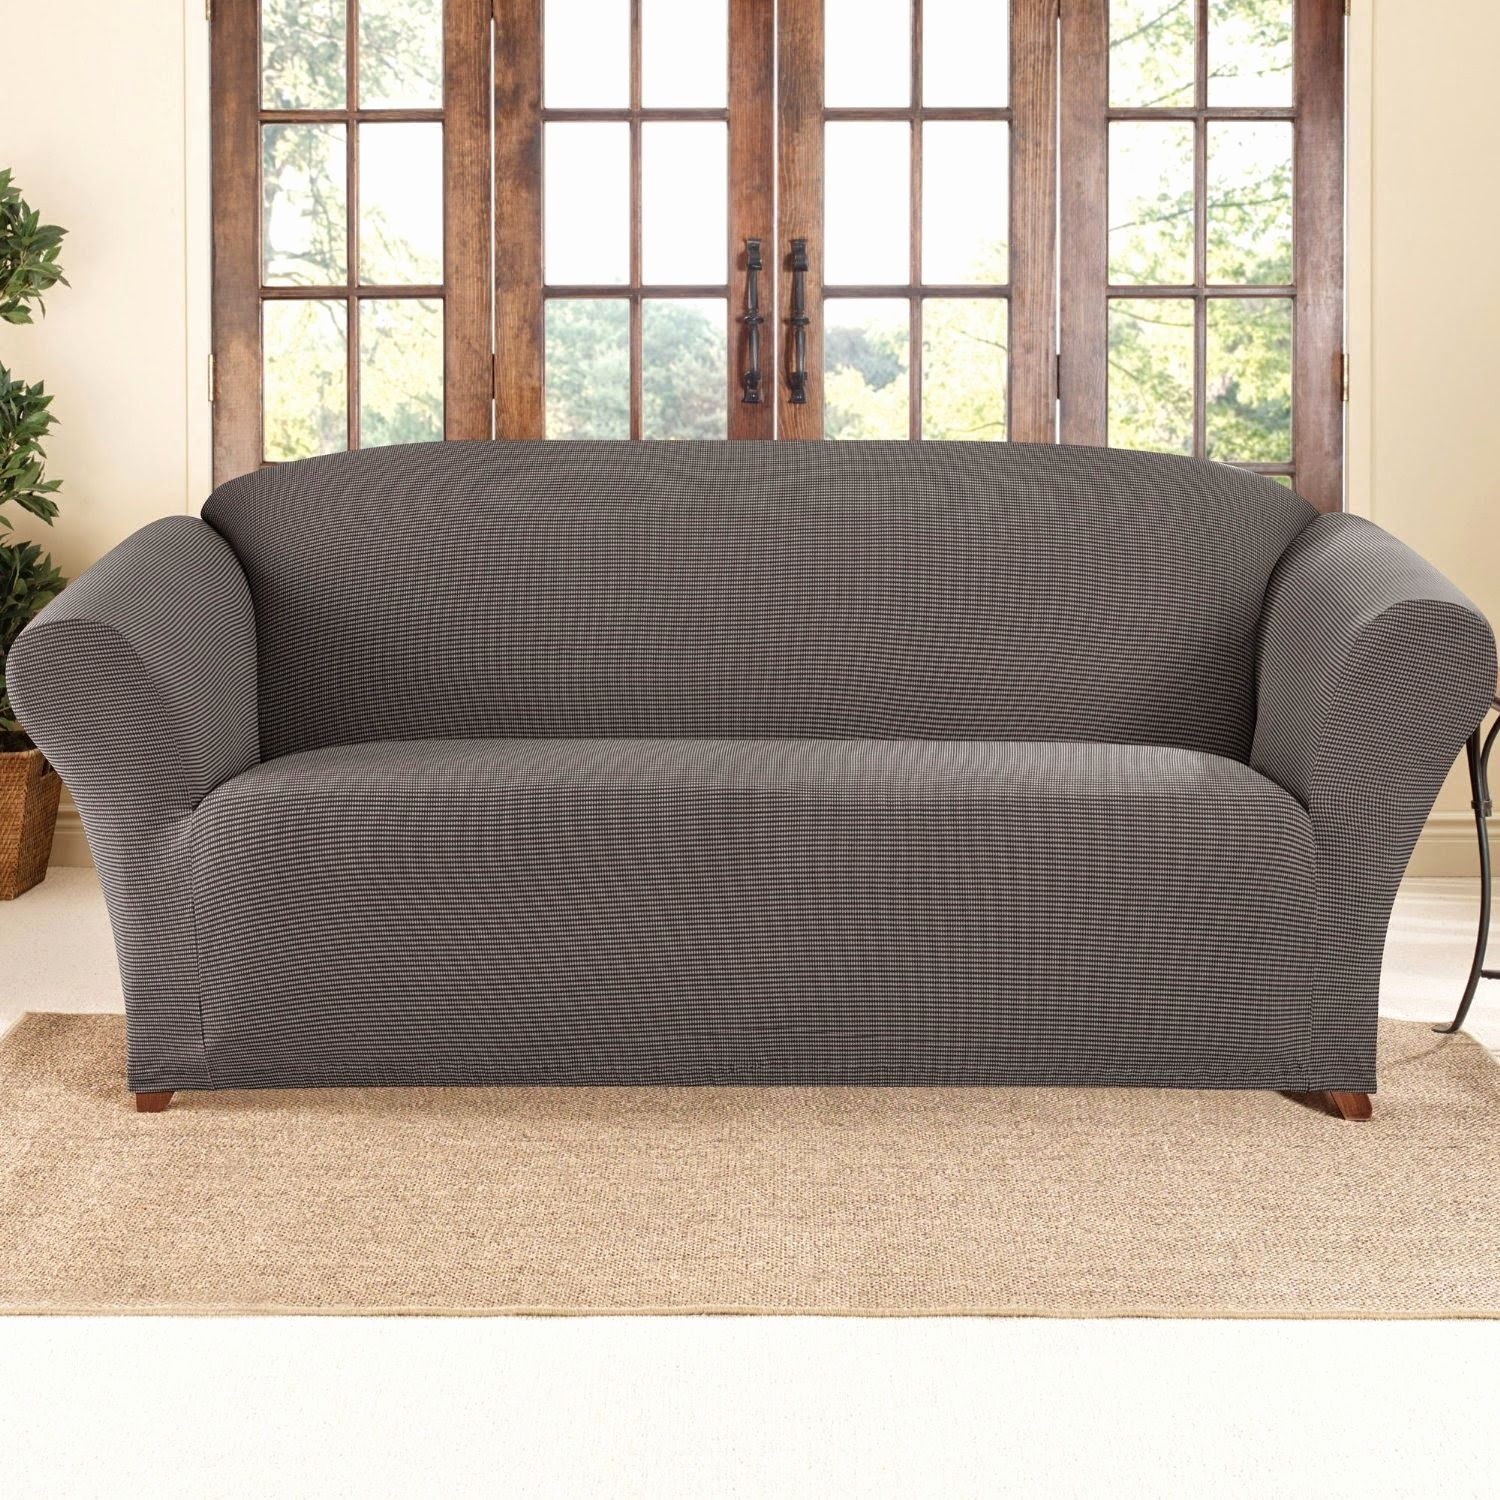 Ideas Amazon Sofa Covers Photograpy Amazon Sofa Covers Fresh Massage Couch Covers In Fabulous Full Size In Walma Sofa Covers Couch Covers Sectional Couch Cover